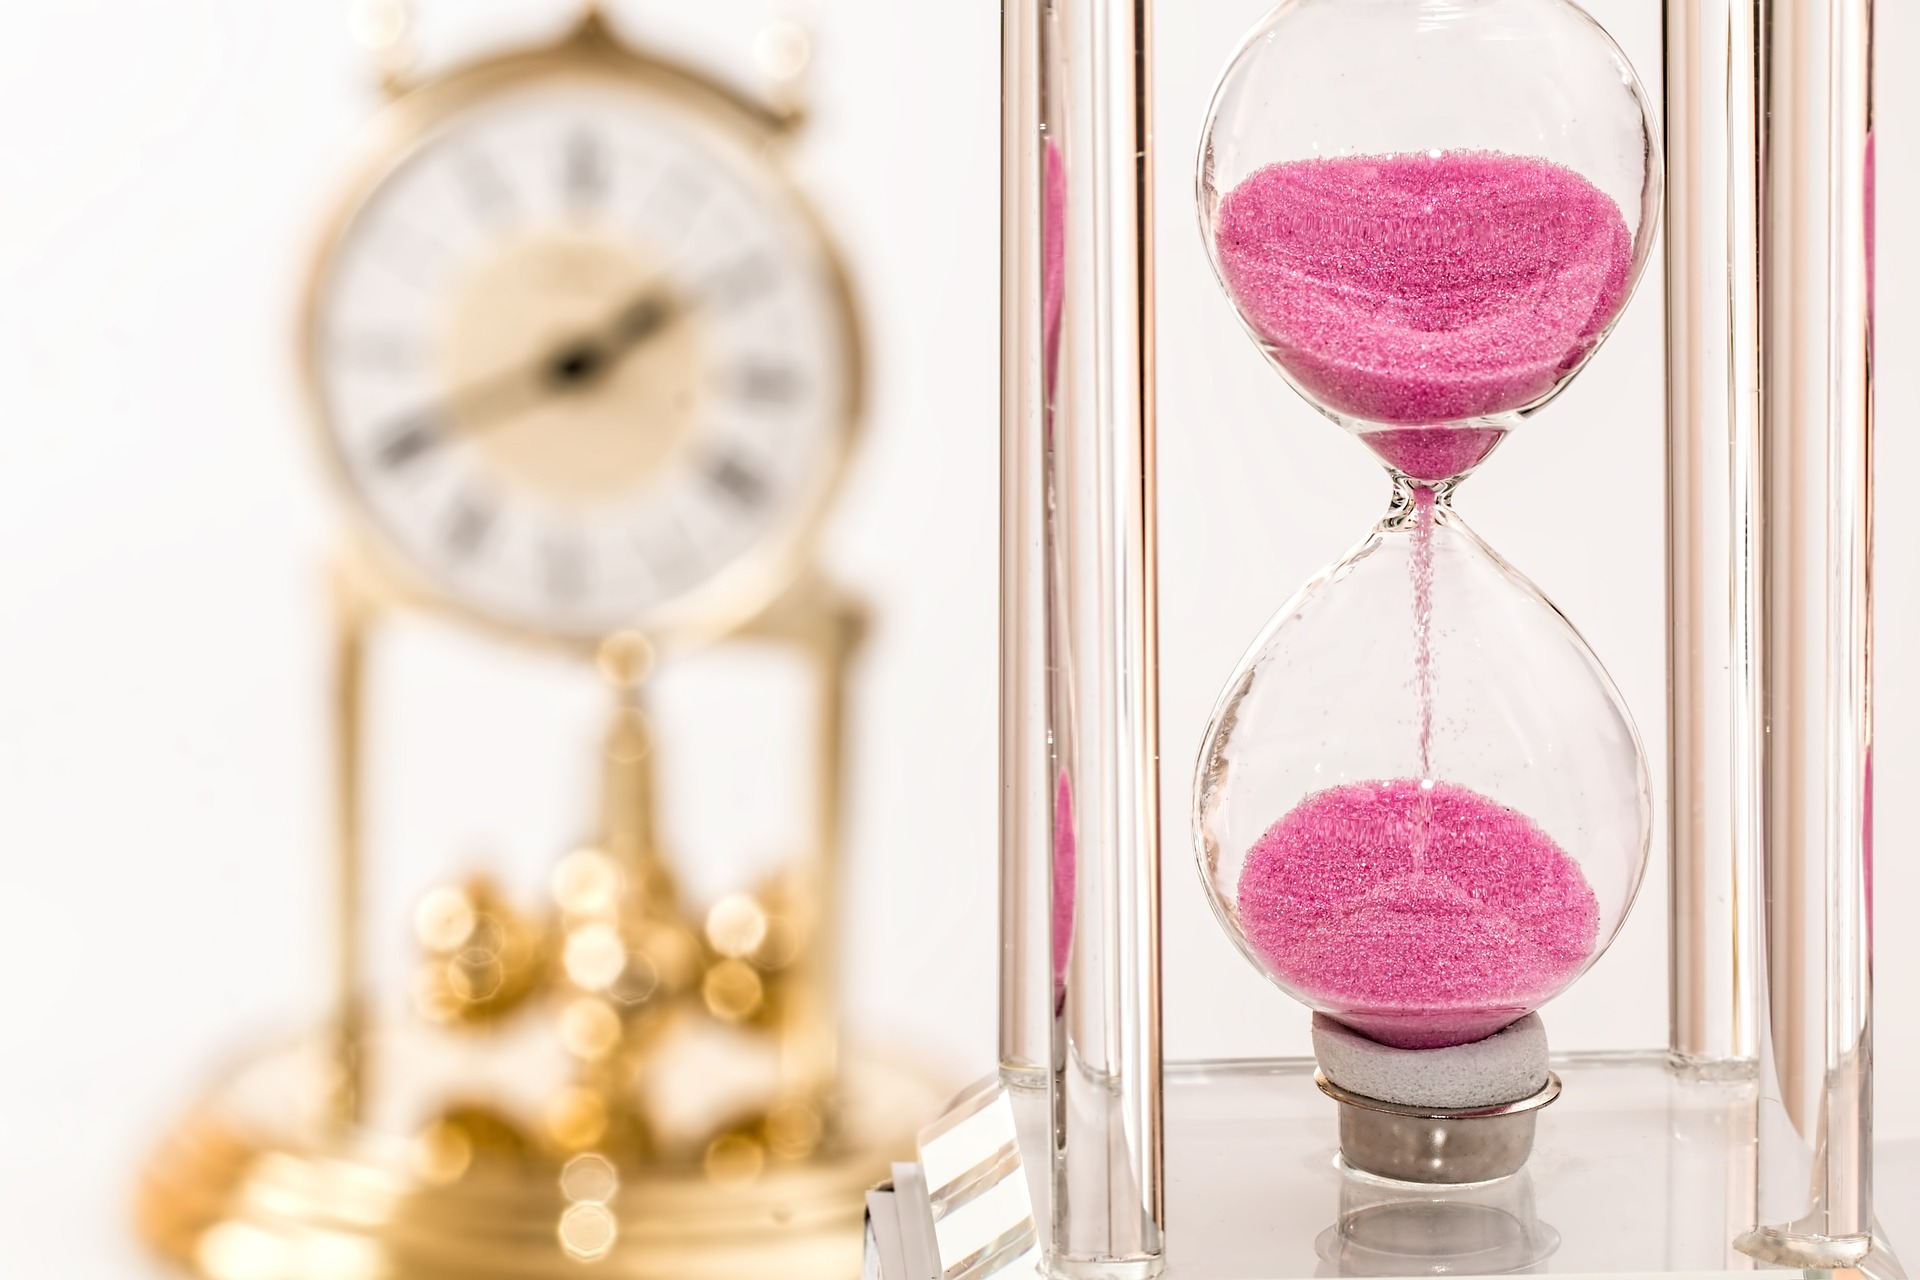 How to manage your time bandits